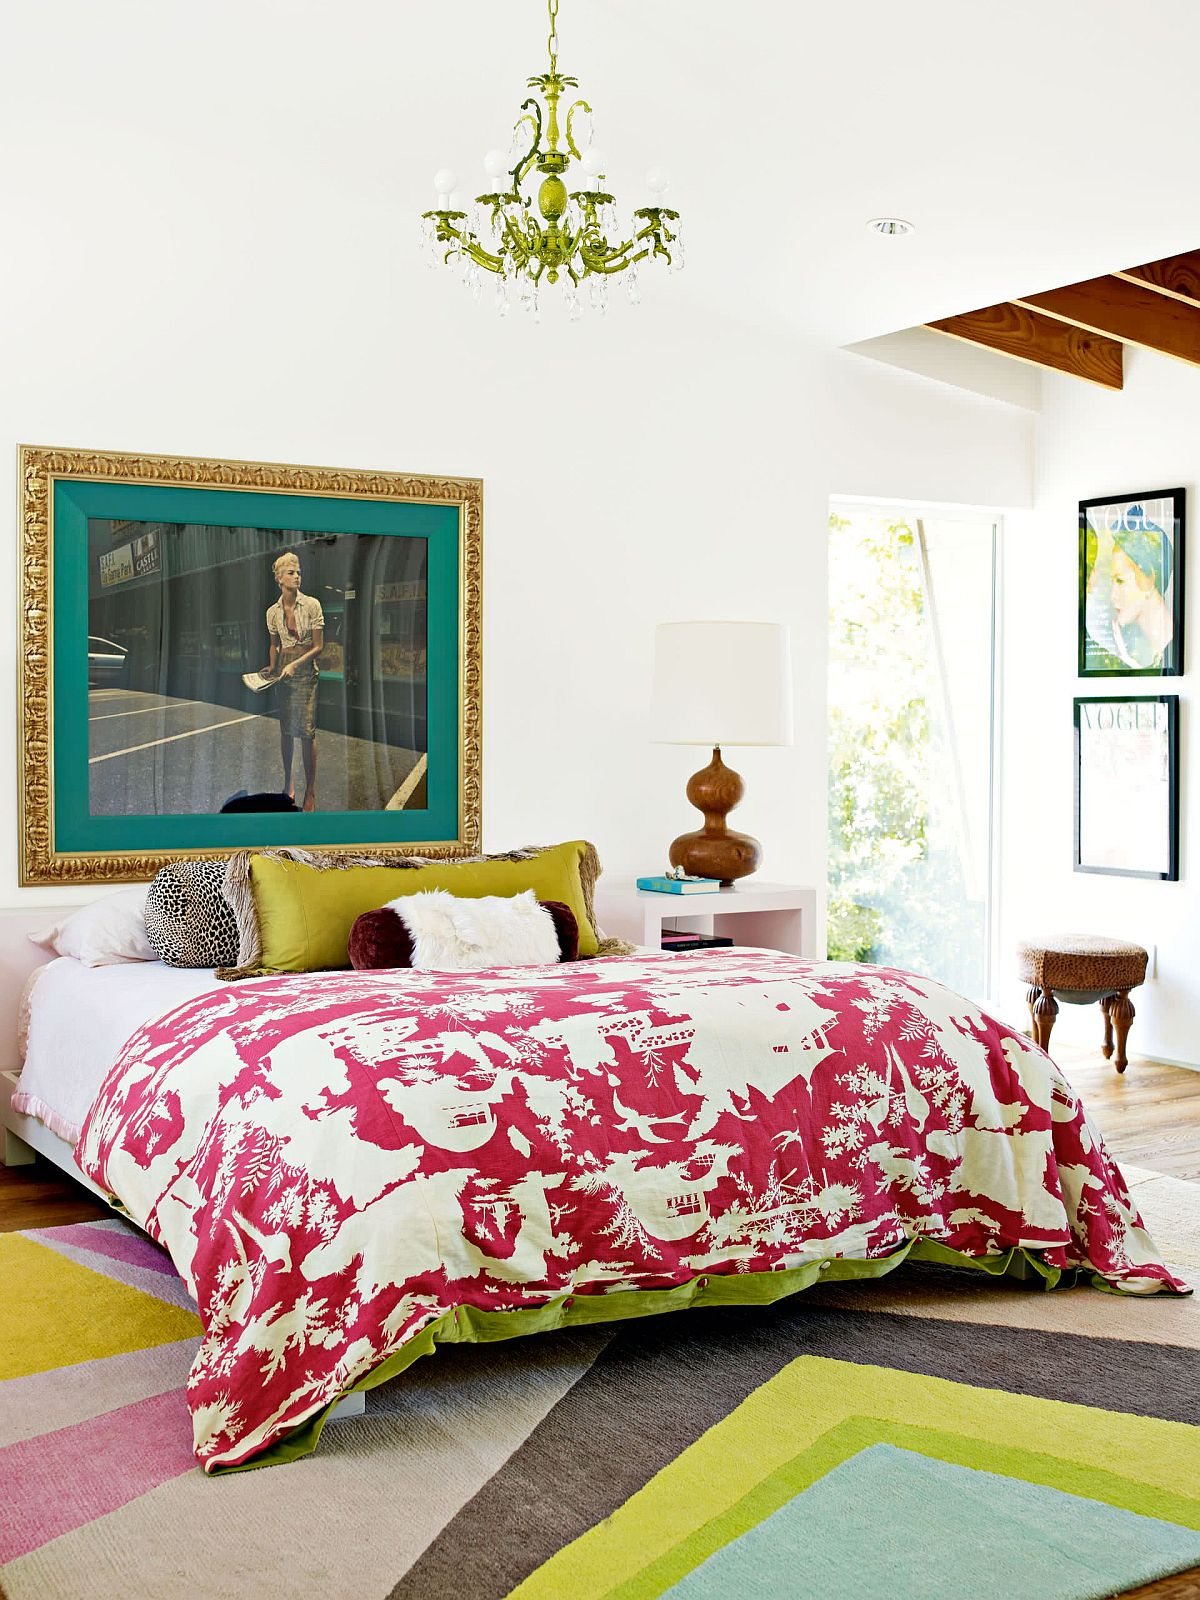 Bedding, rug and accent pillows add color to the eclectic neutral bedroom